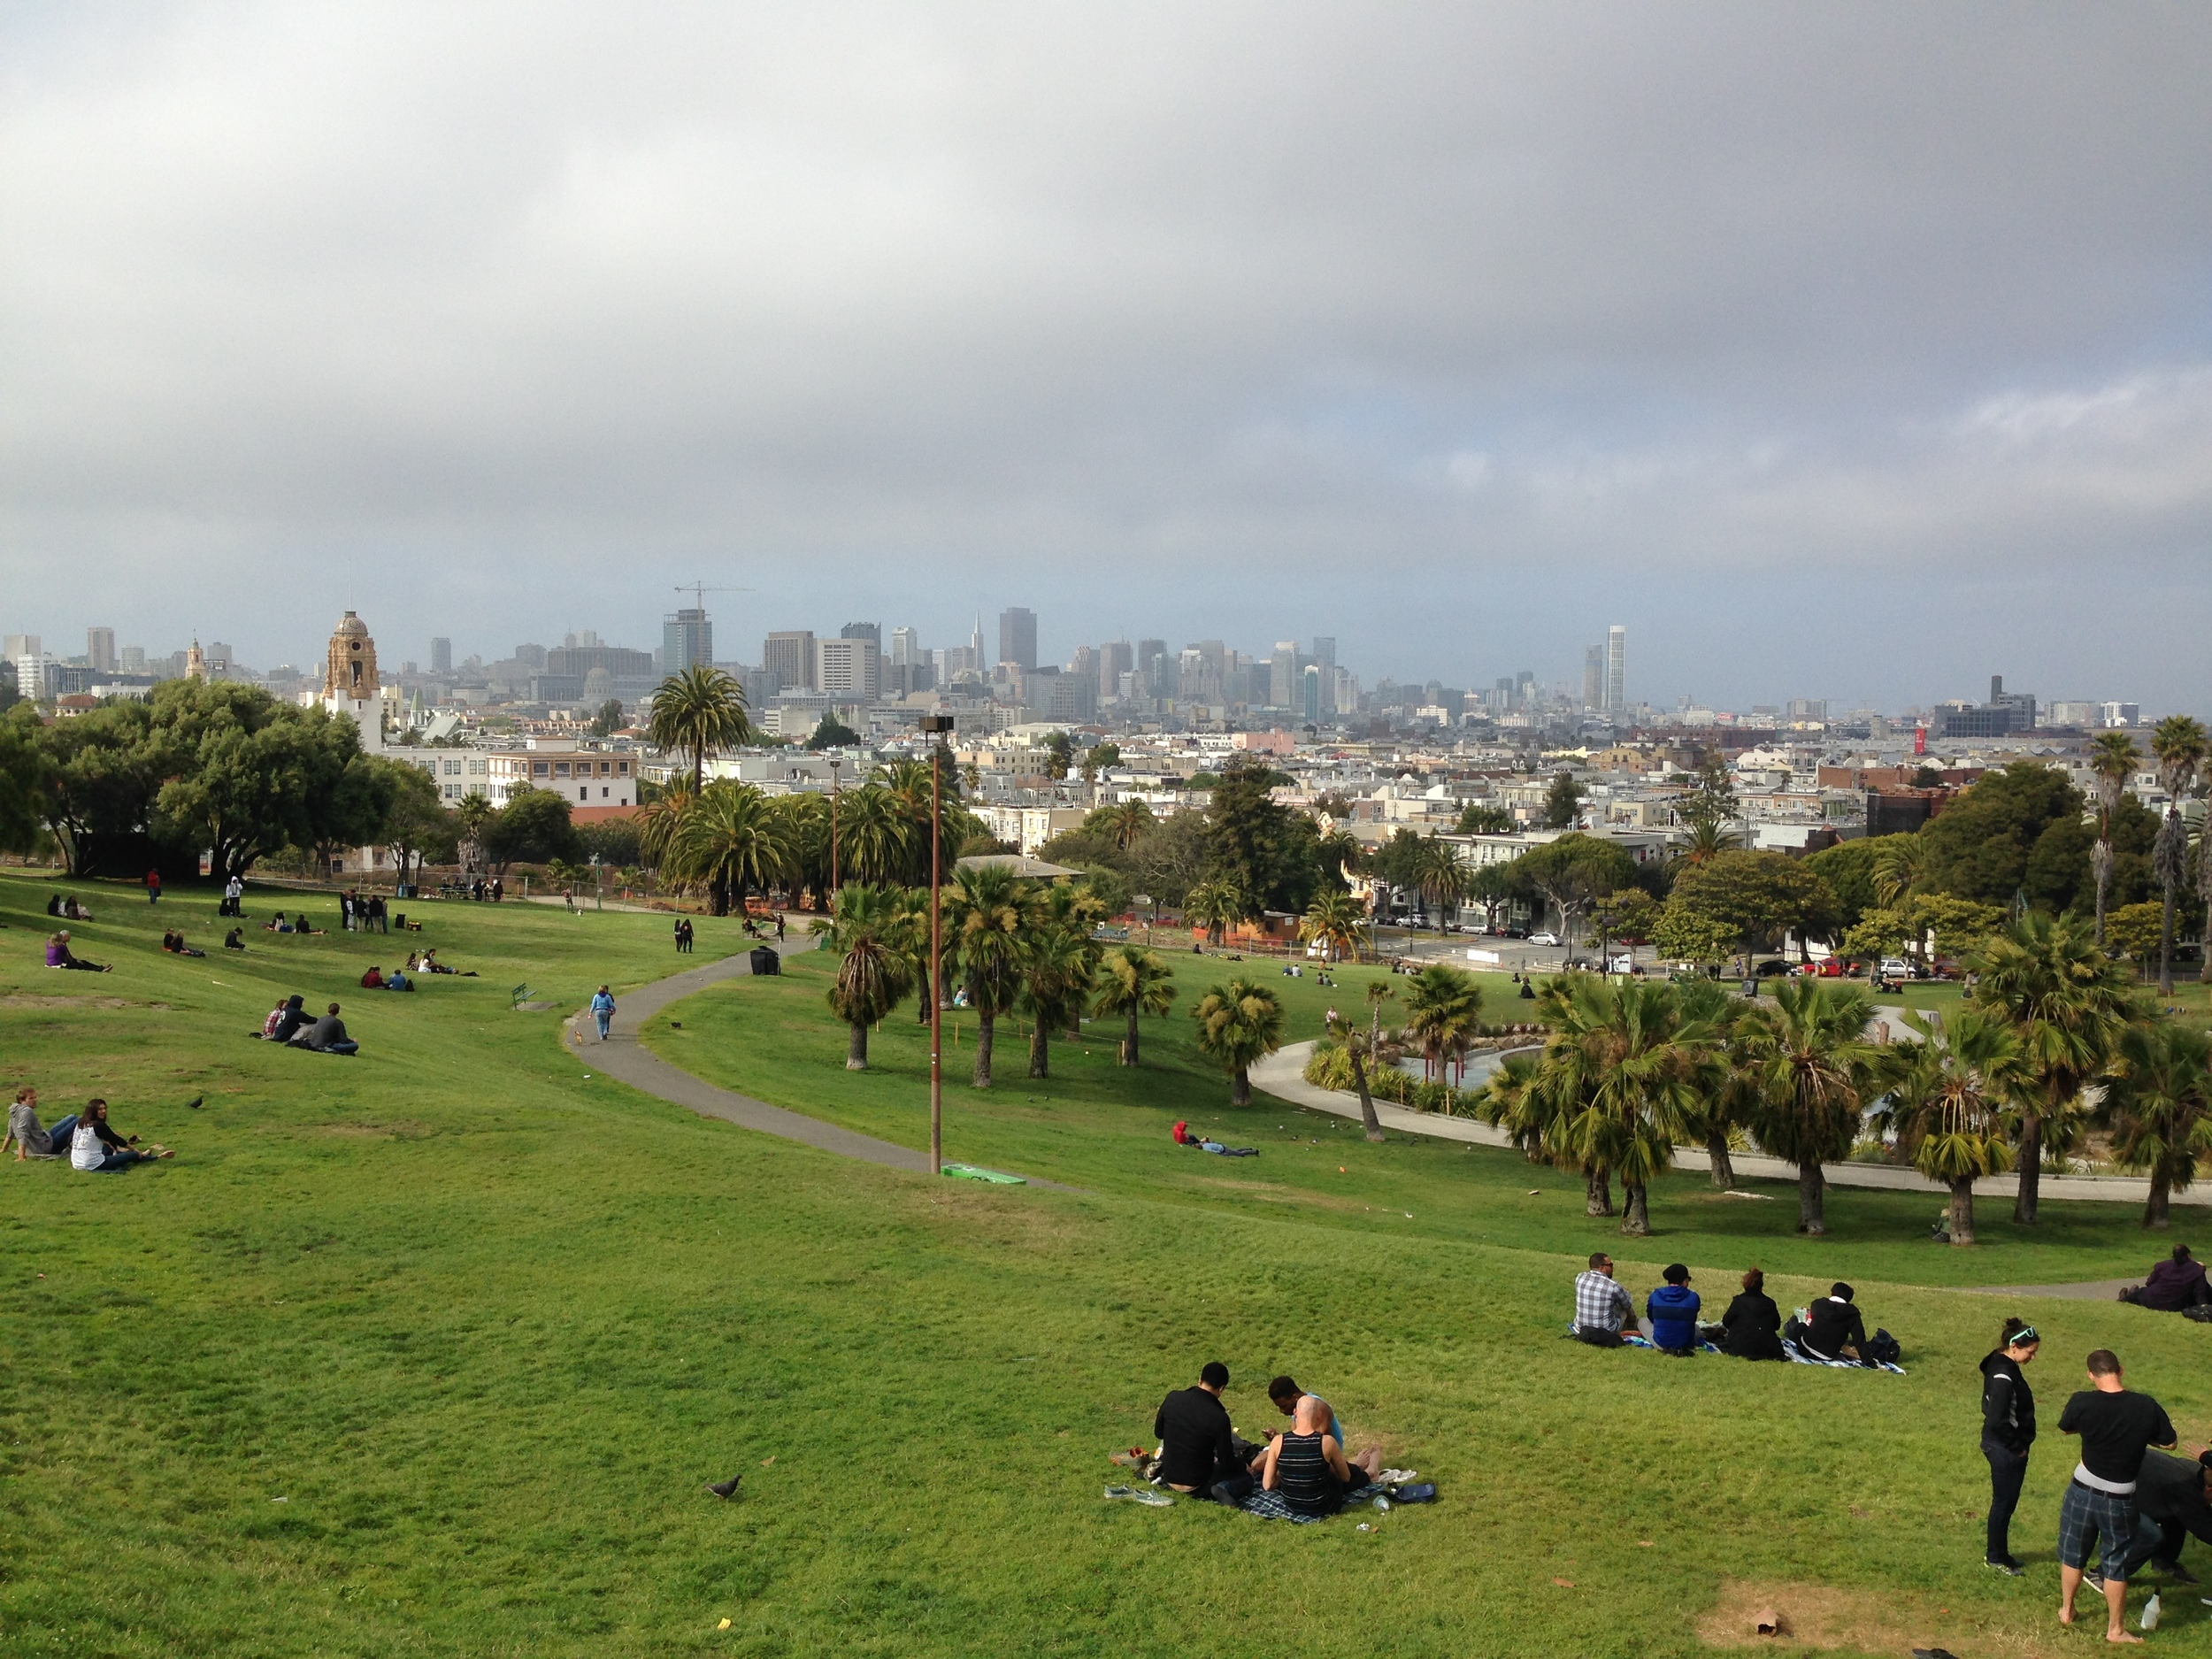 SF_01_The_Post_Shop_Delores_Park.JPG